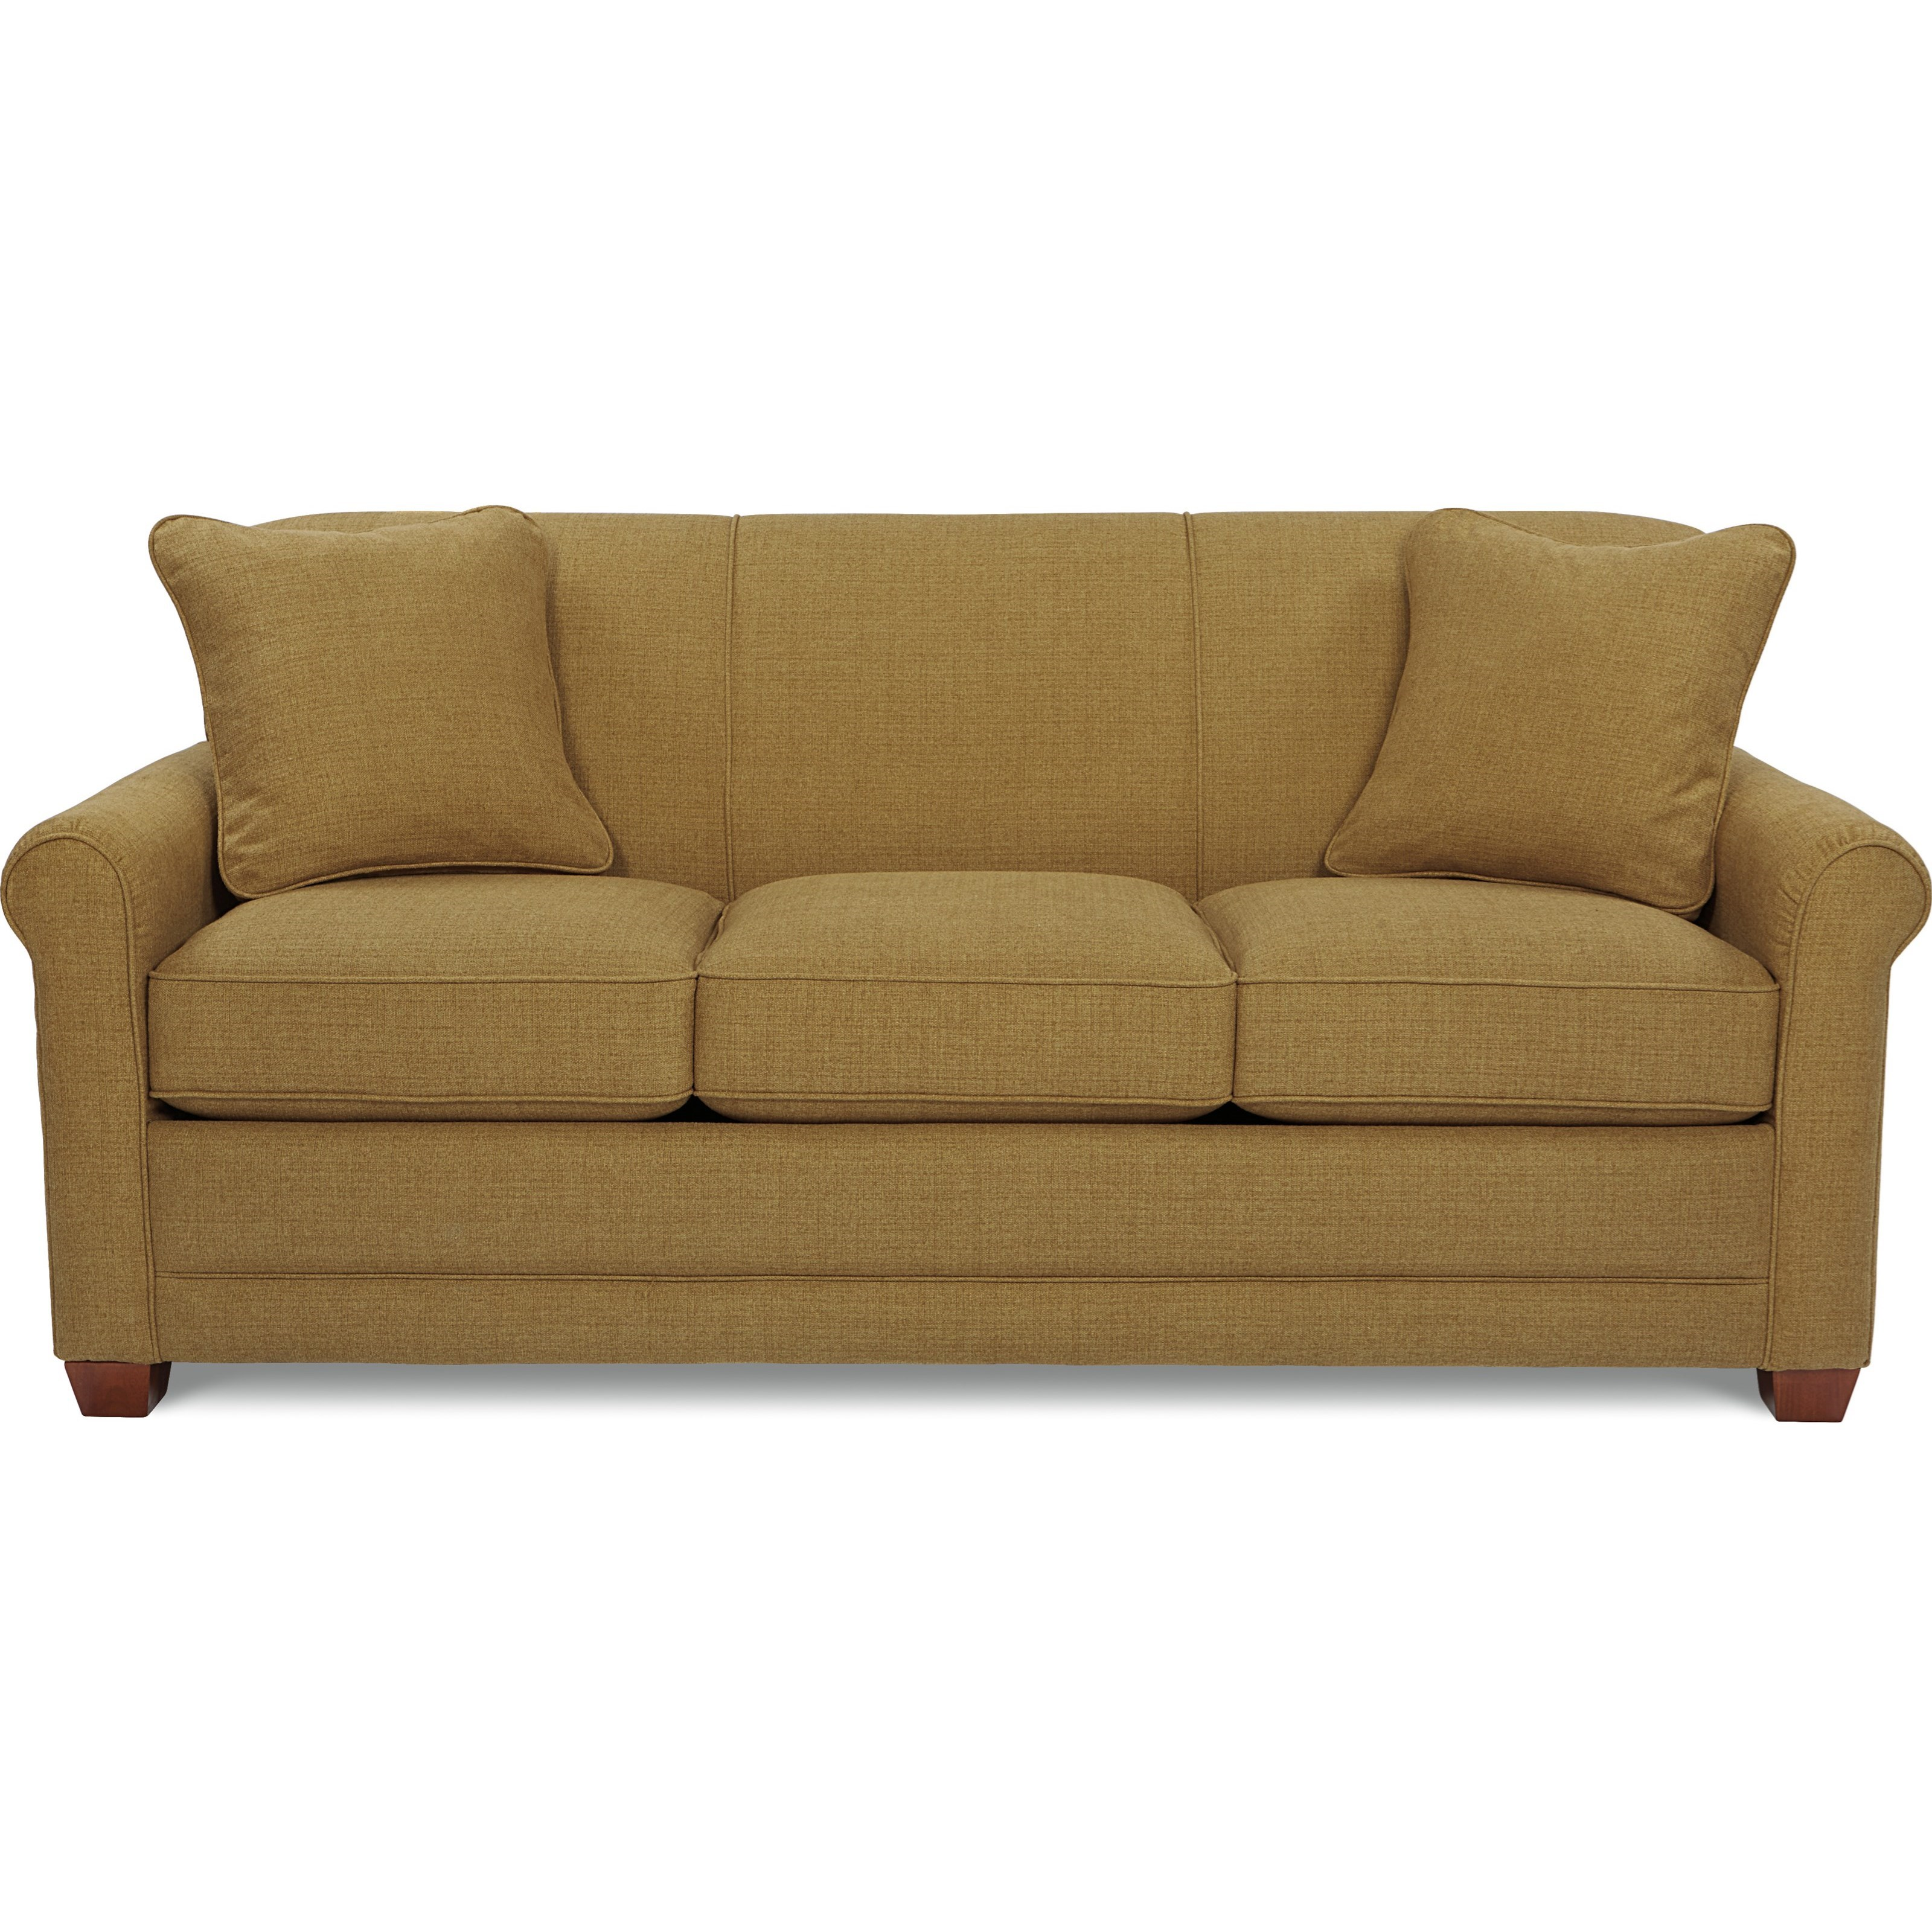 Amanda La-Z-Boy® Premier Sofa by La-Z-Boy at Jordan's Home Furnishings